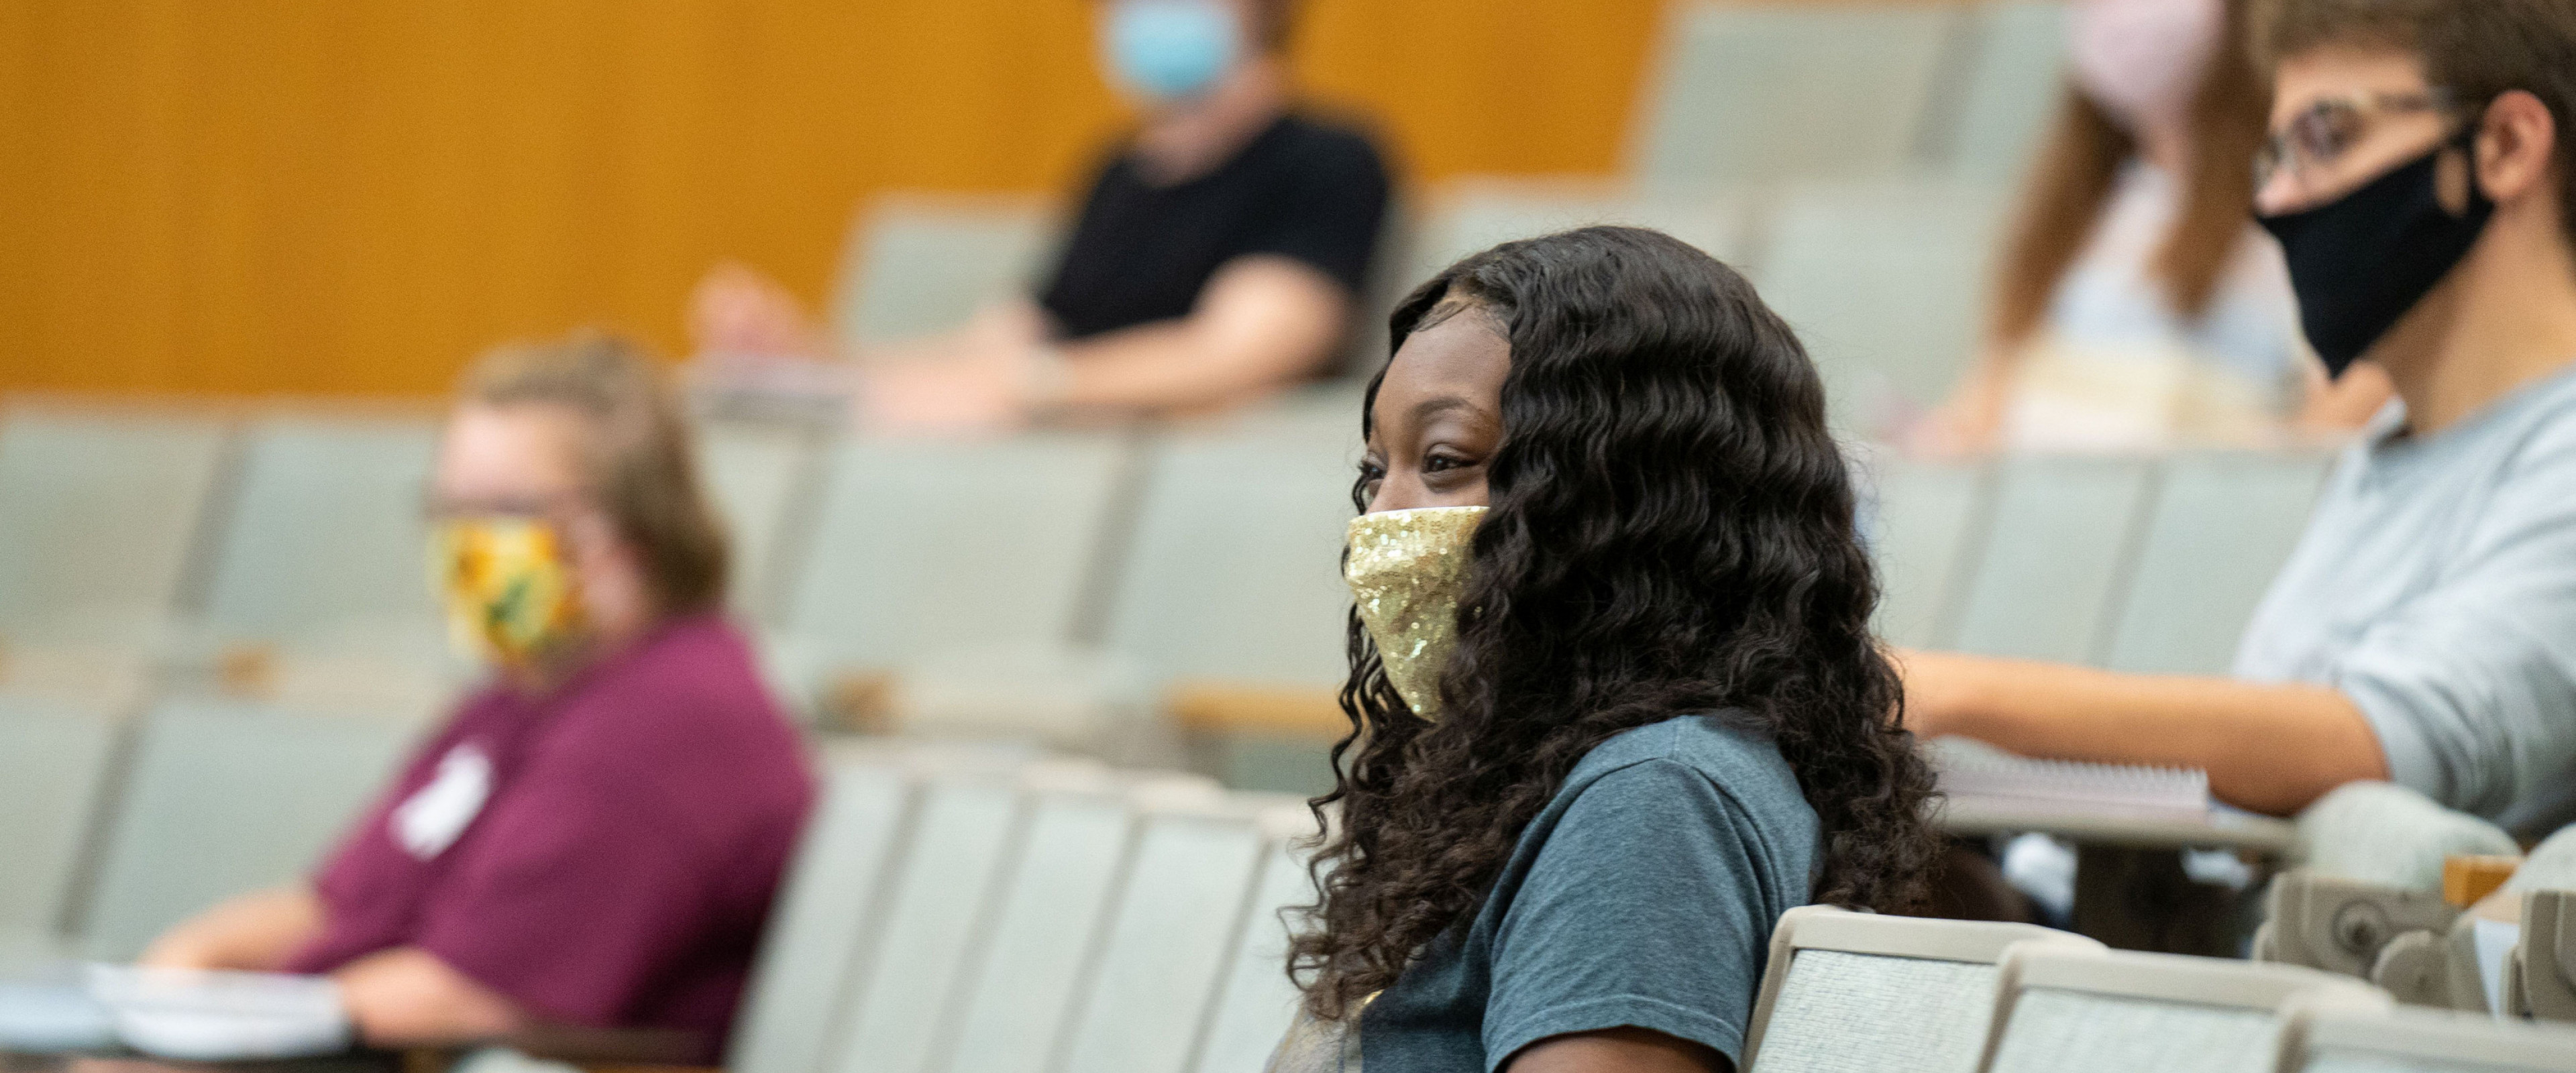 Socially distanced students sitting in auditorium wearing face masks